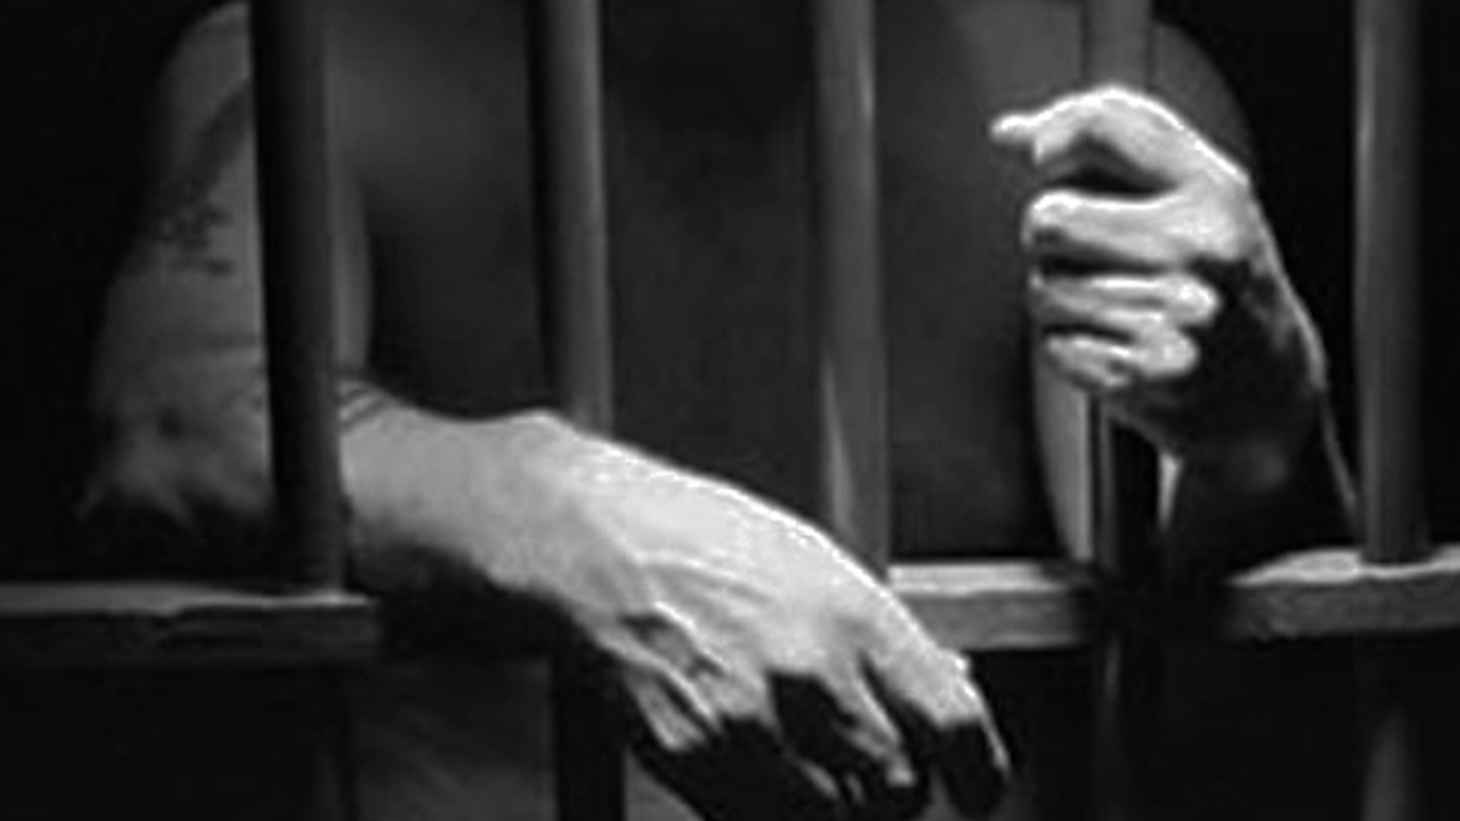 """KCRW's Bob Carlson and Warren Olney introduce this special episode of To the Point: """"Imprisoning our Mentally Ill."""""""